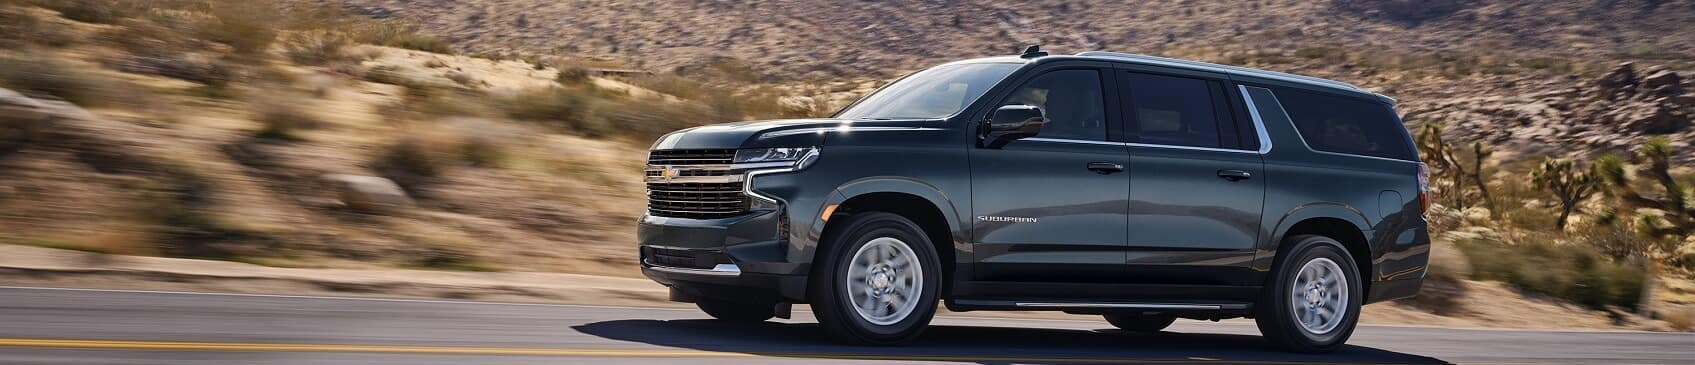 Smart & Safe with the 2021 Suburban